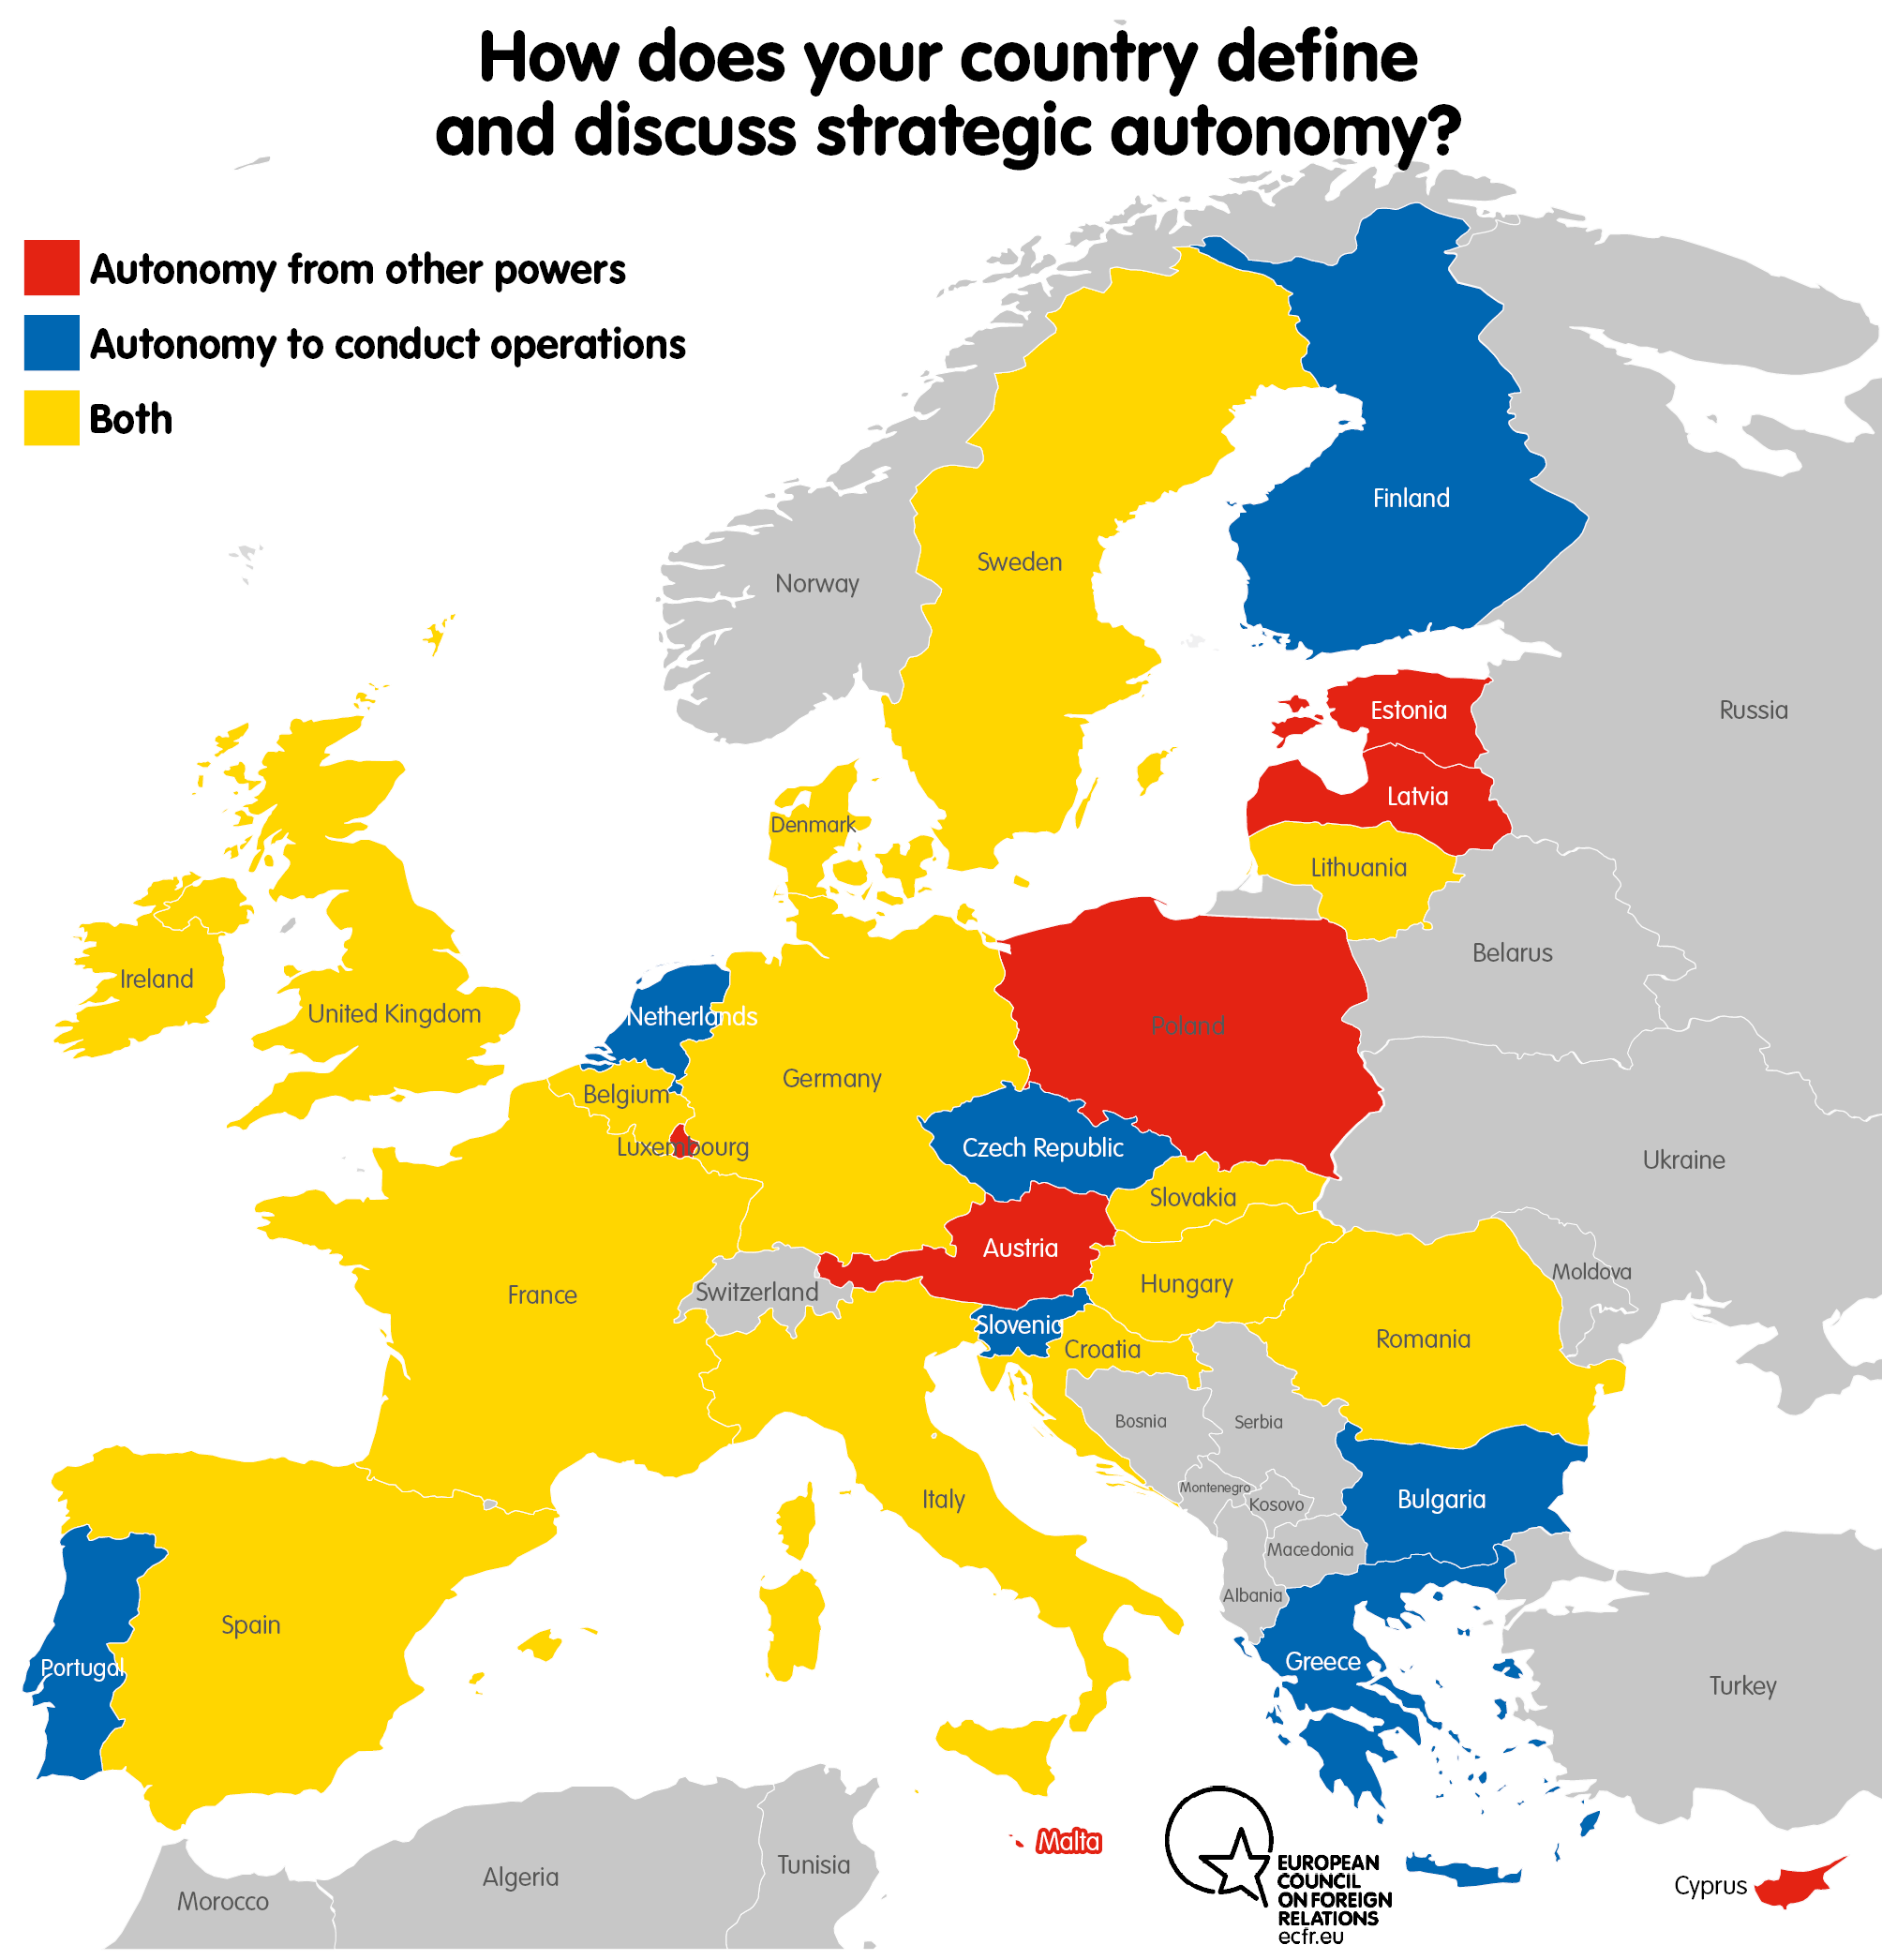 How does your country define and discuss strategic autonomy